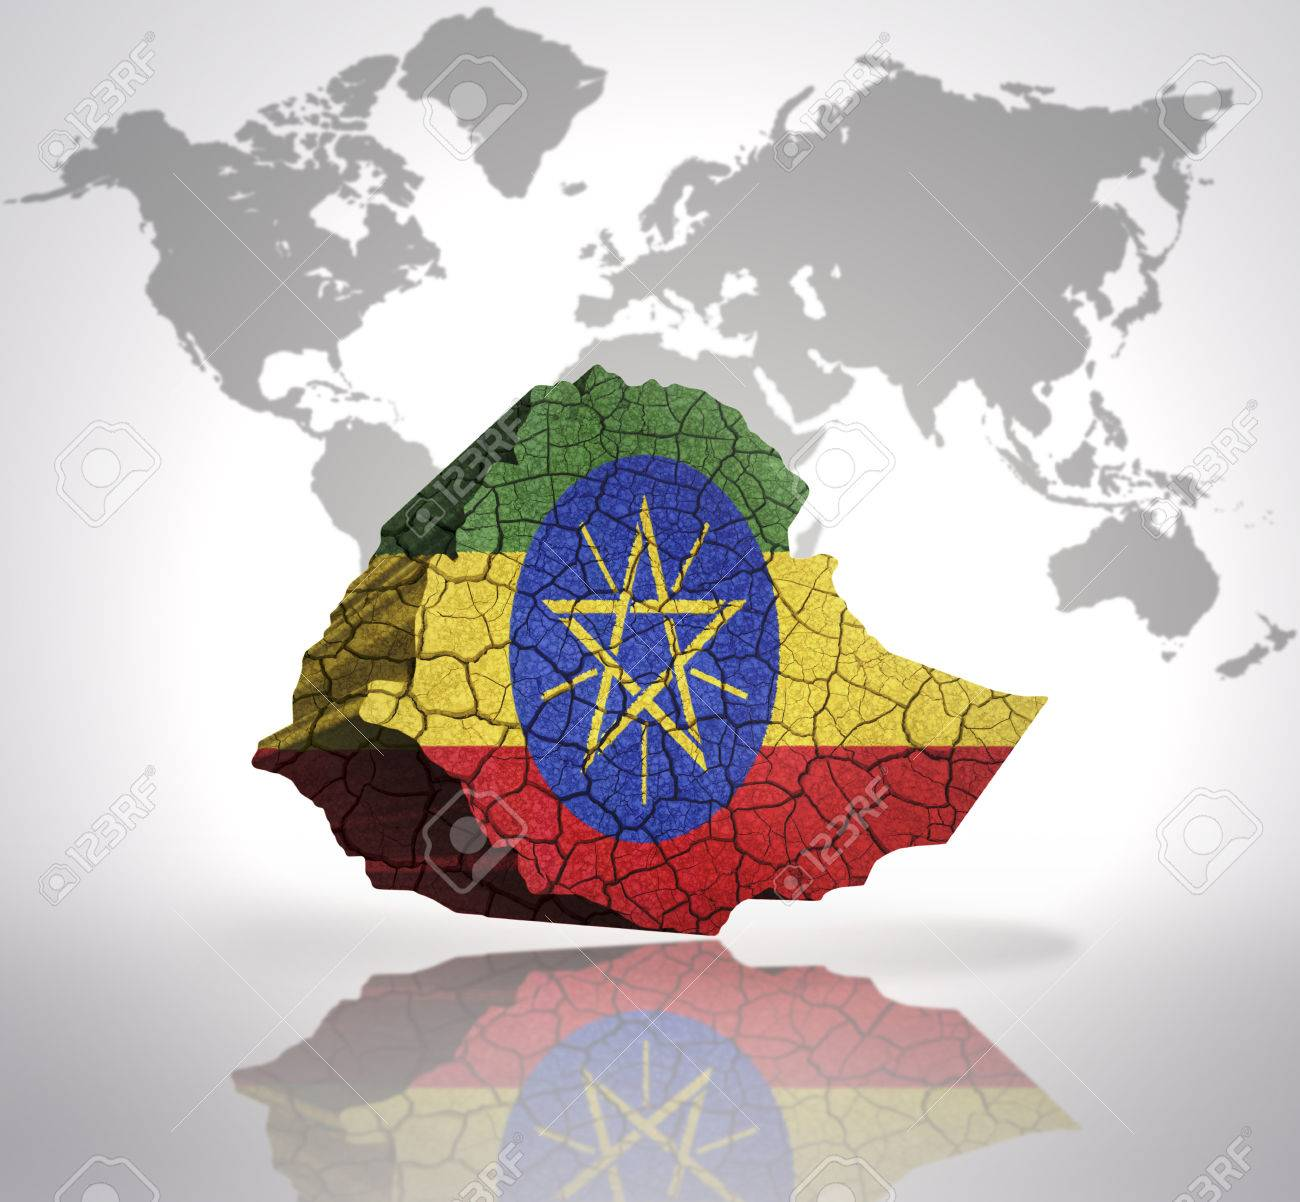 Map of ethiopia with ethiopian flag on a world map background stock map of ethiopia with ethiopian flag on a world map background stock photo 33005910 gumiabroncs Choice Image